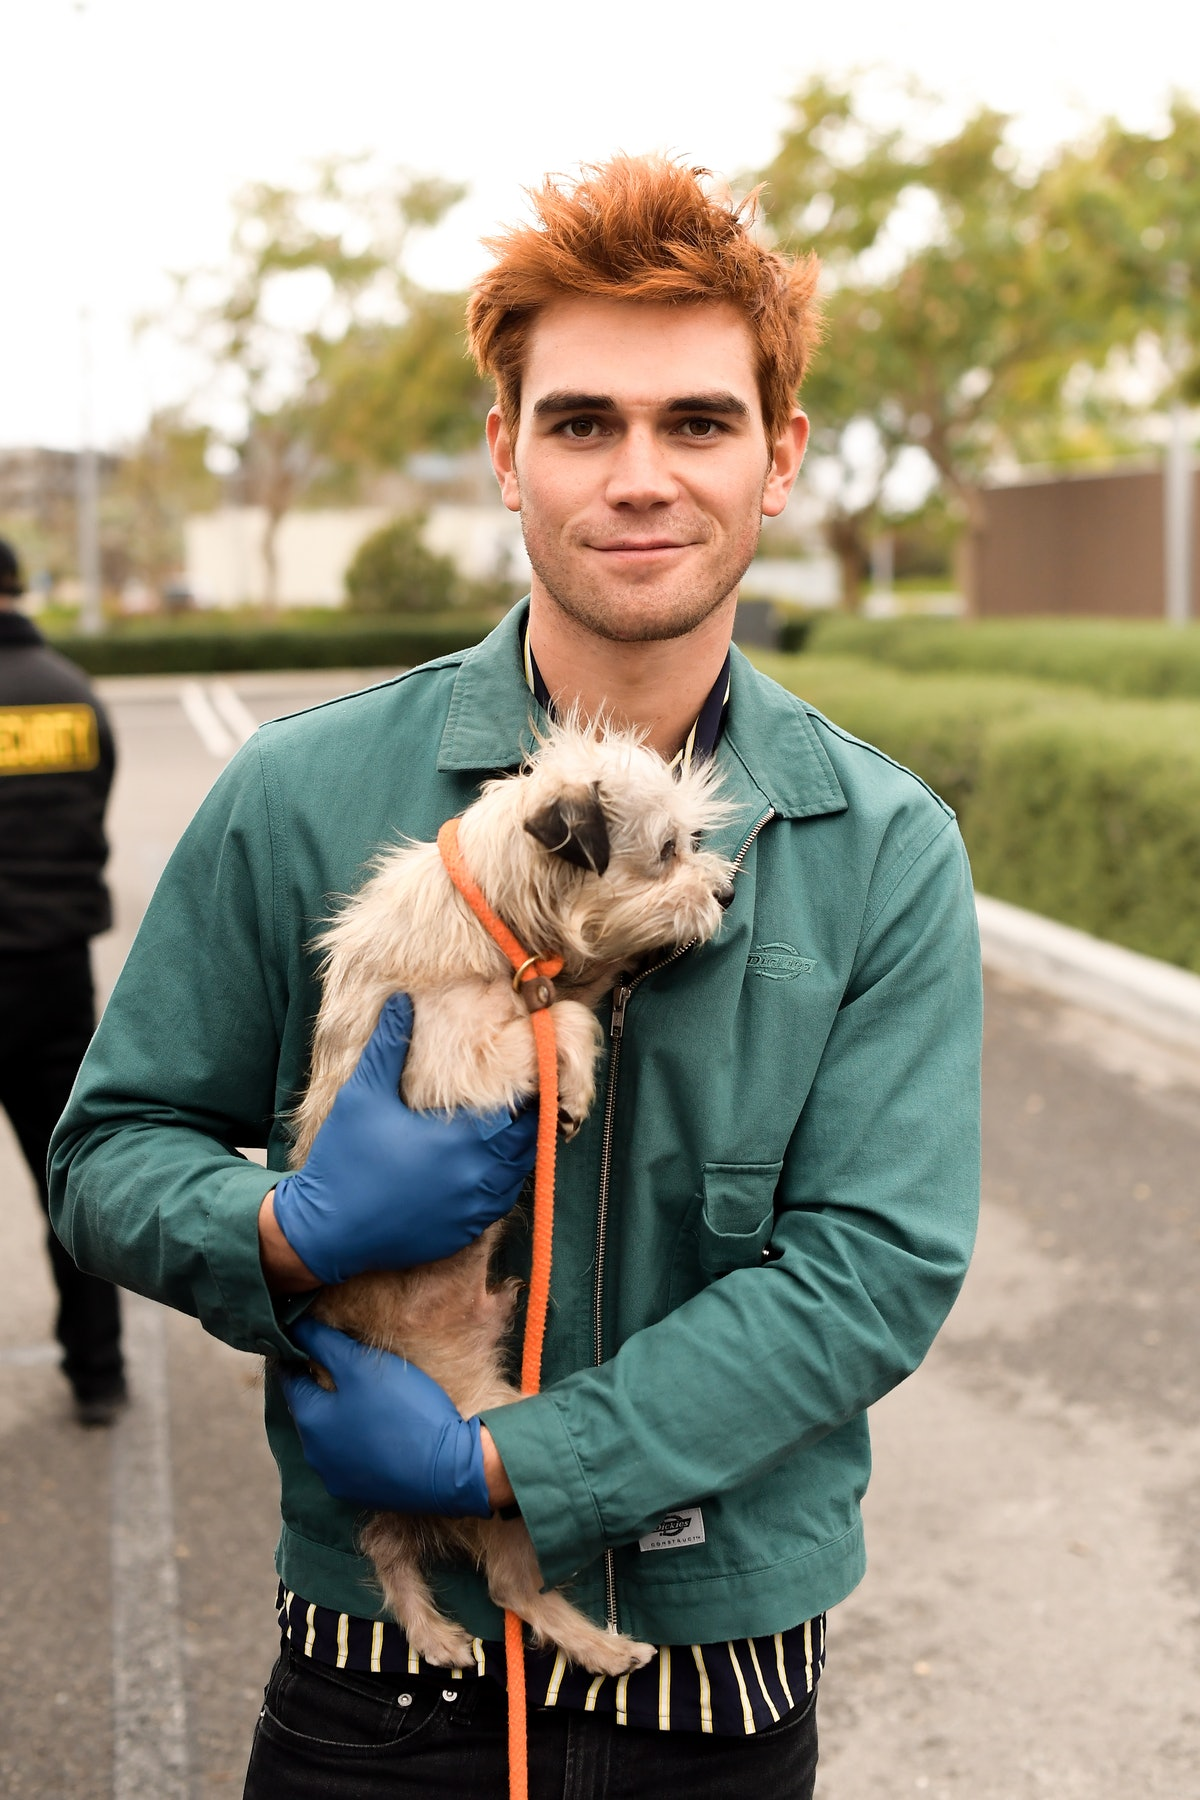 KJ Apa's Zodiac Sign Is Proof He'd Make A Great Partner, Here's Why